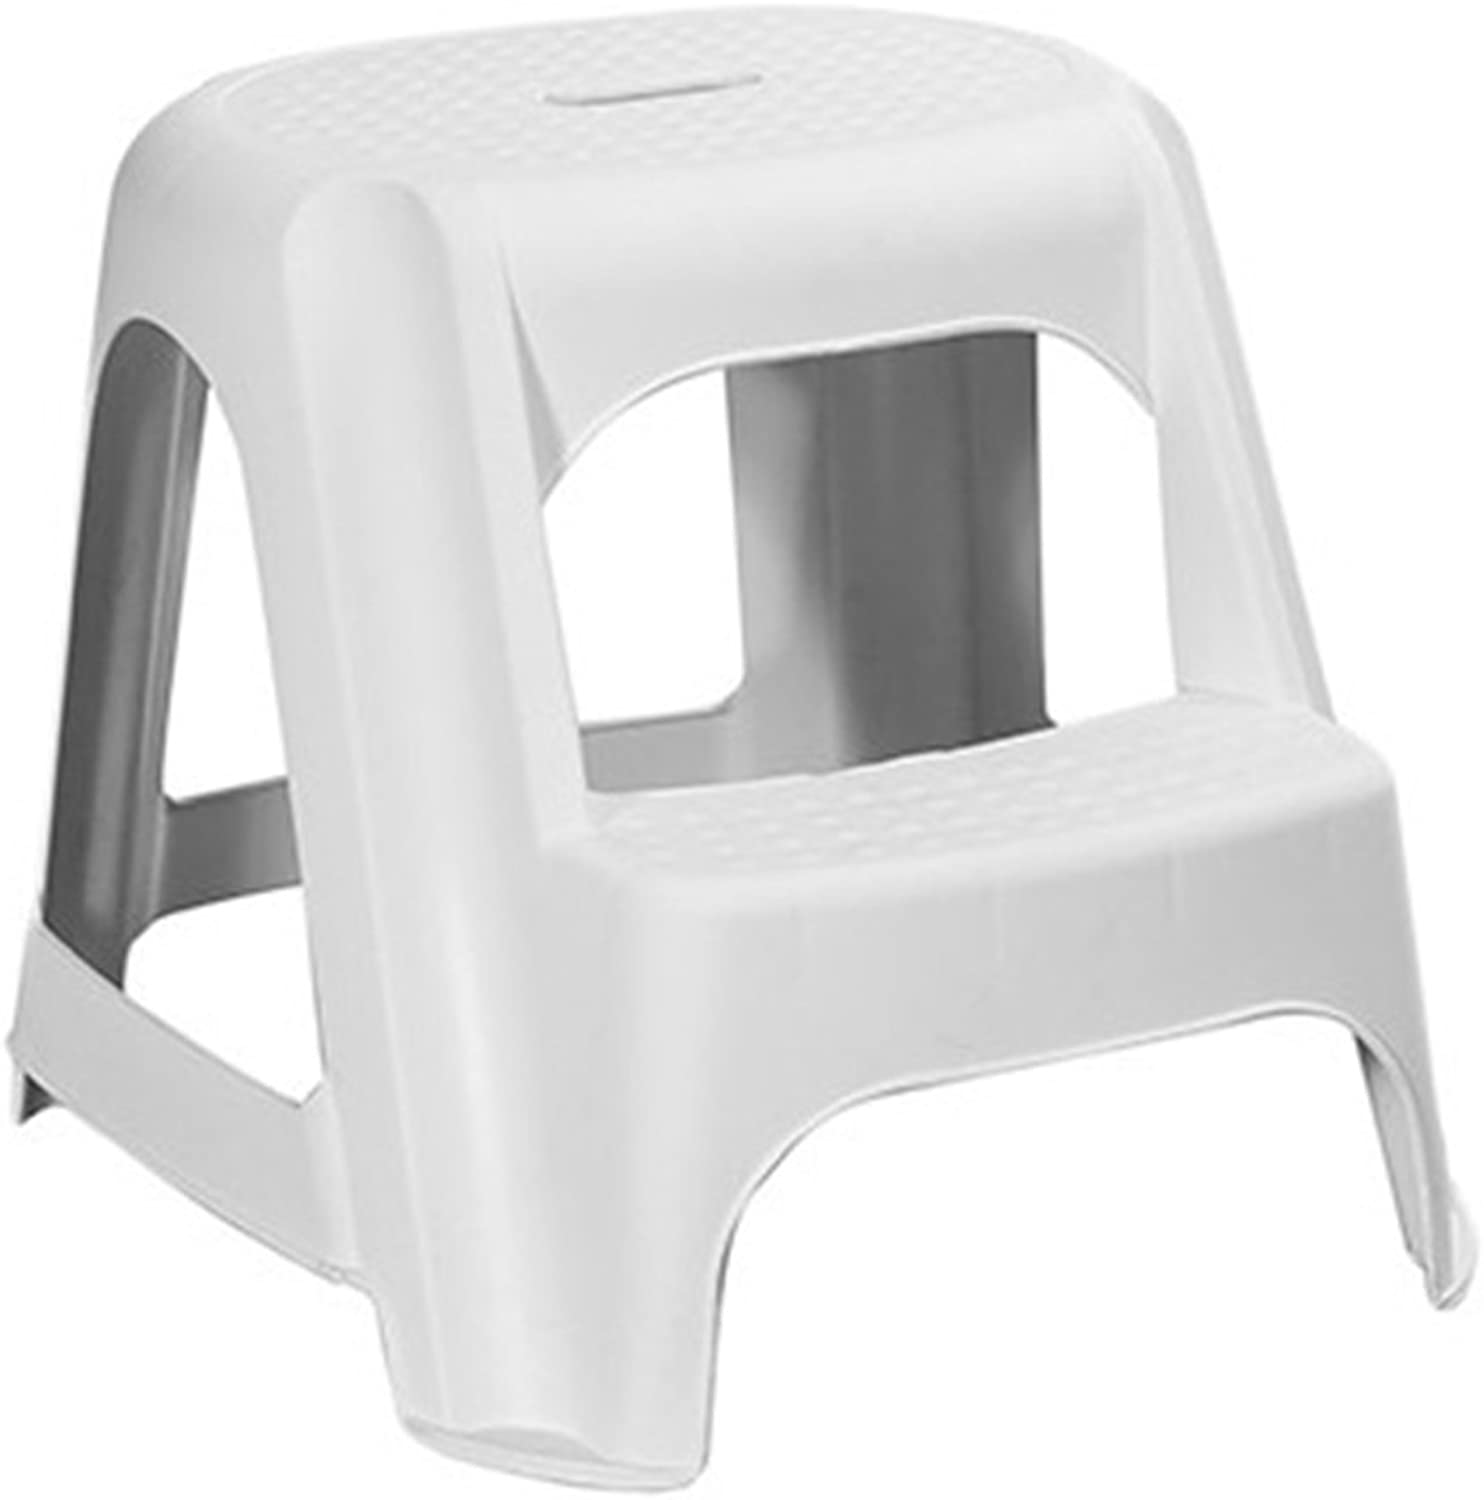 GAIXIA-Ladder stool Step Stool Multi-Function 2 Layer Portable Non-Slip Padded Footrest Environmental Predection PP Material 2 color Height 48cm (color   White)